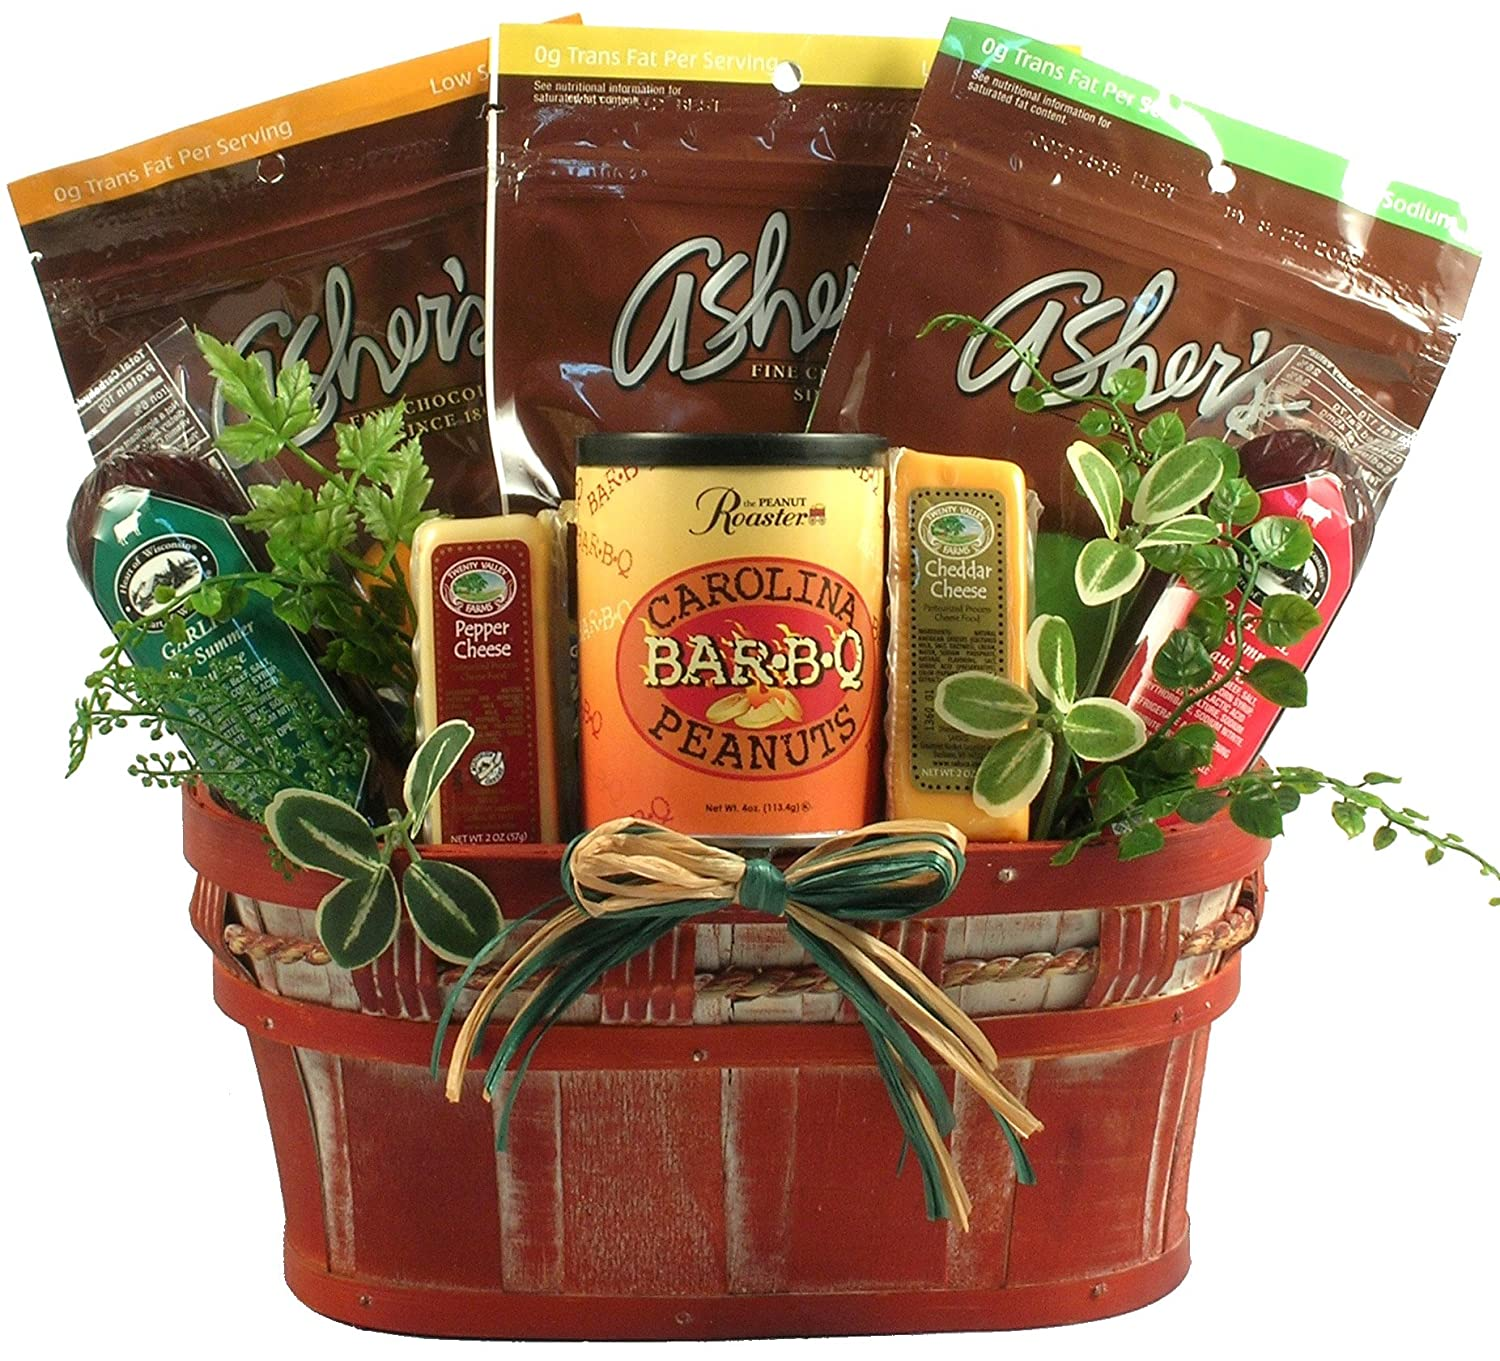 Gift Basket Village Healthy Living (Chocolates), Sugar Free Gift Basket with Diabetic Friendly Sweet and Savory Snacks Including Nuts, Sausage, Cheese and More, 6 Pounds